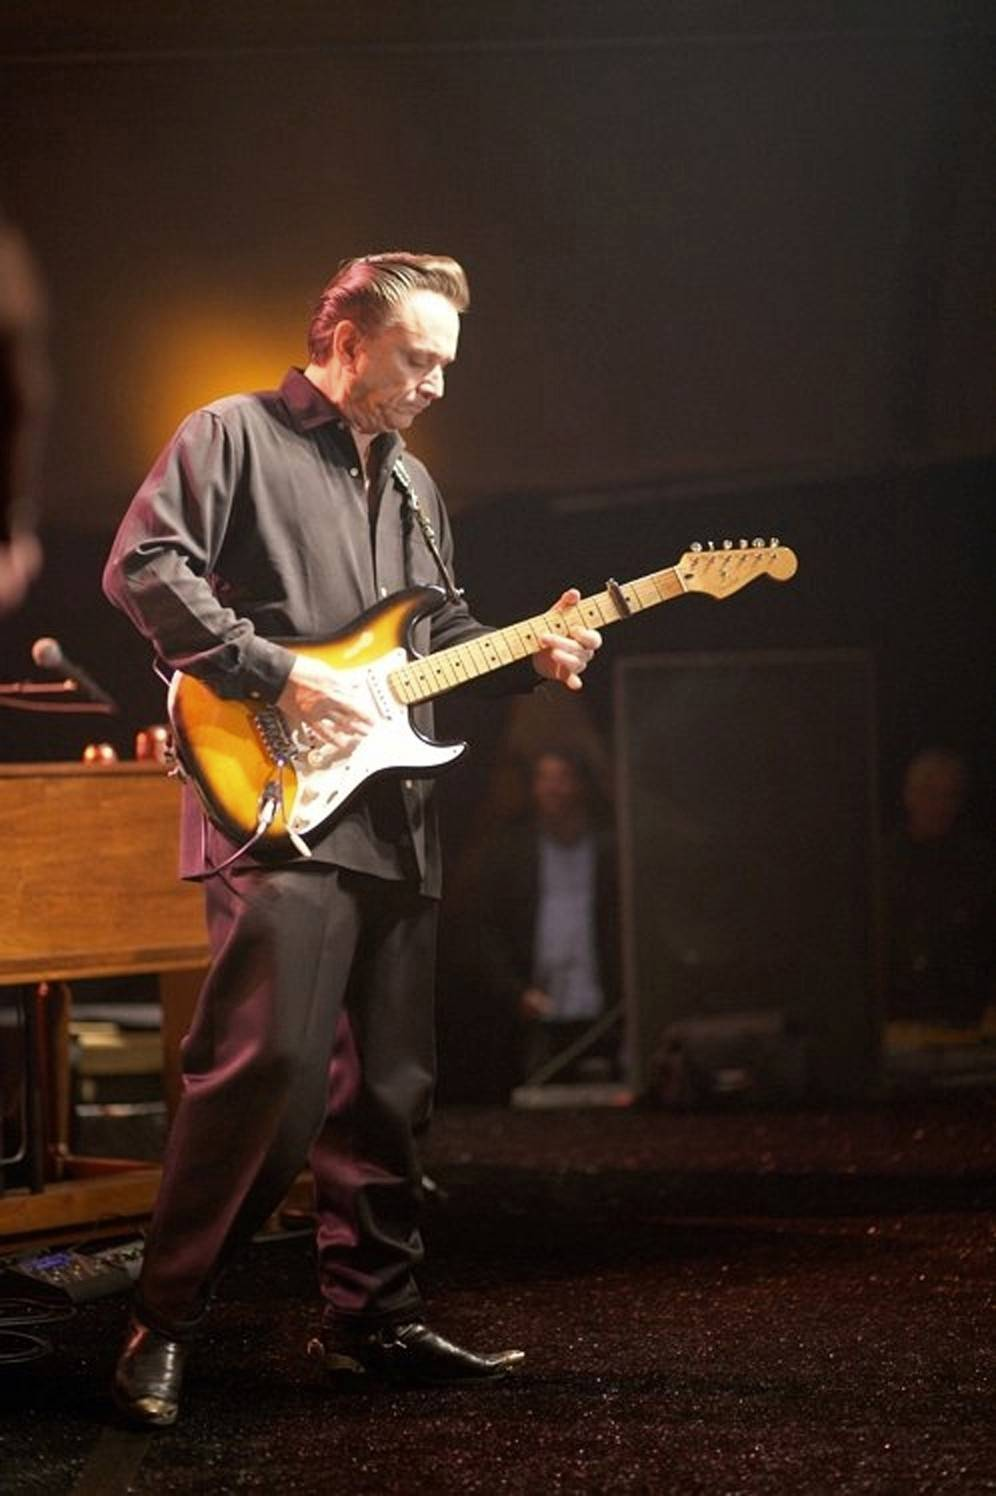 Jimmie Vaughan performs at the Blues on Fox Festival at RiverEdge Park in Aurora at 9 p.m. Friday, June 27.